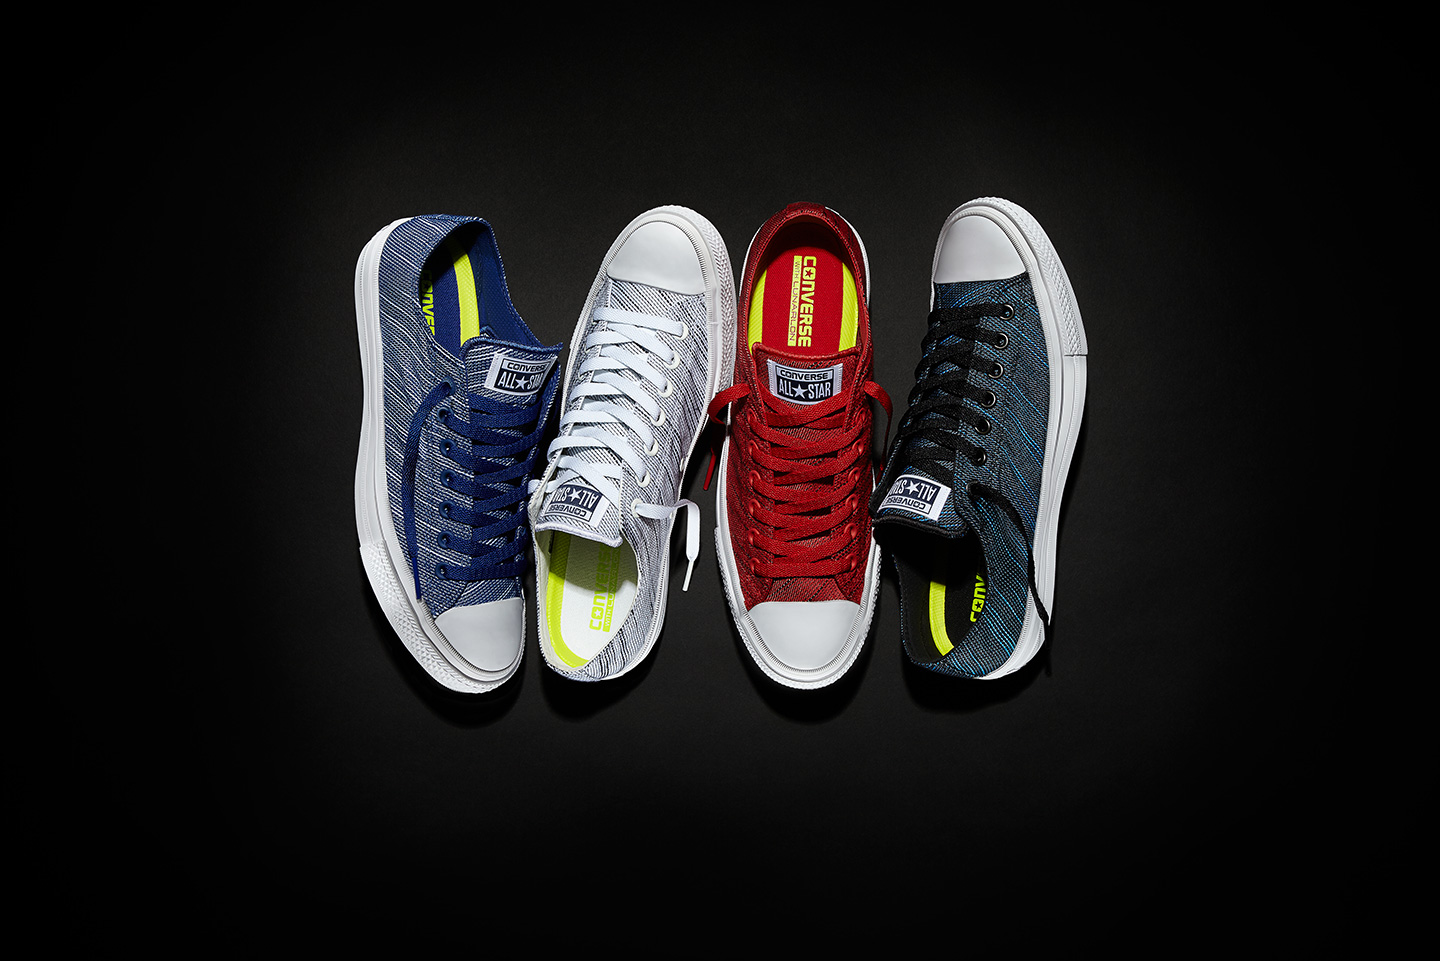 6d5ac6ec6a70f7 The new Converse Chuck Taylor All Star II Knit collection complements you  for the spring with a launch date of April 25 in Volt Green